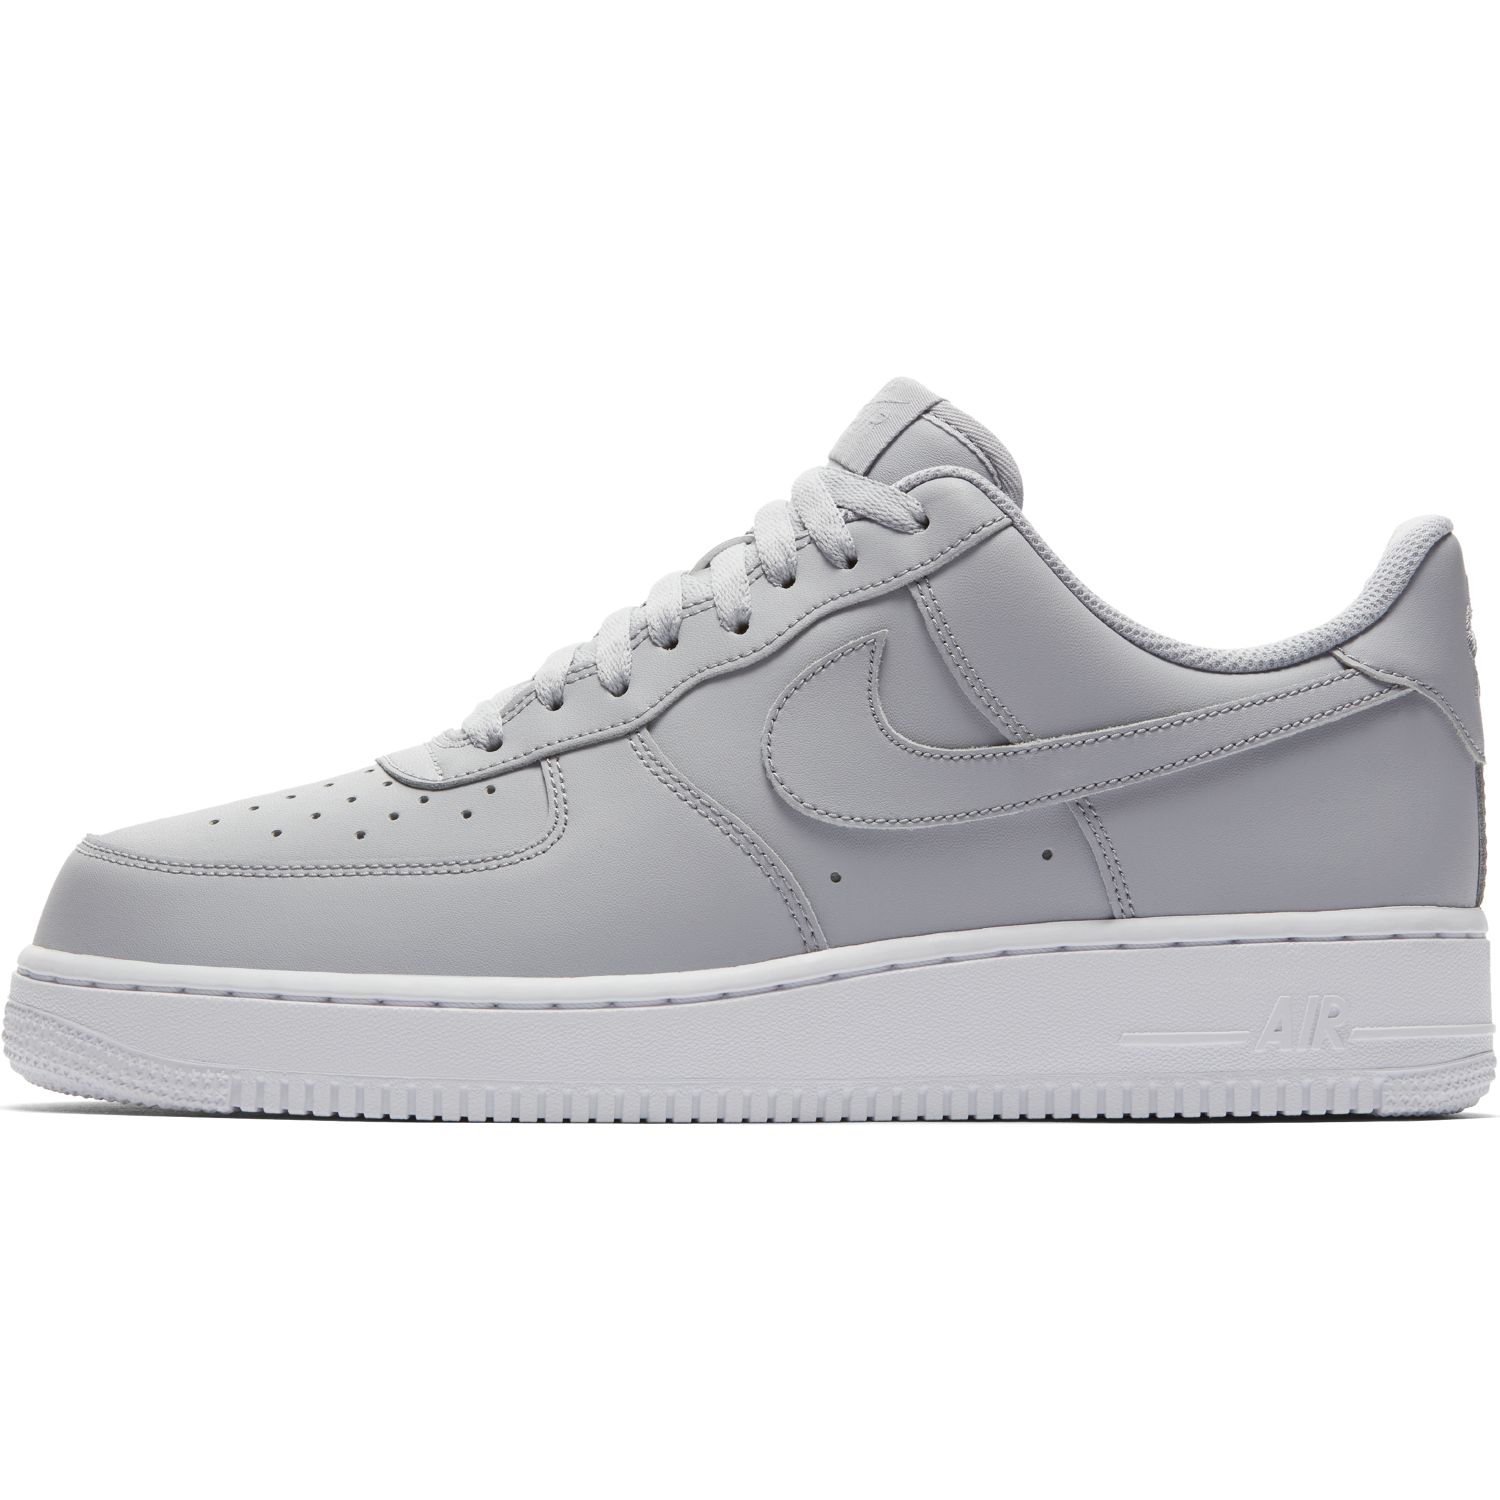 new concept 2d009 6180d ... BUTY MĘSKIE NIKE AIR FORCE 1 07 SZARE AA4083-010 ...